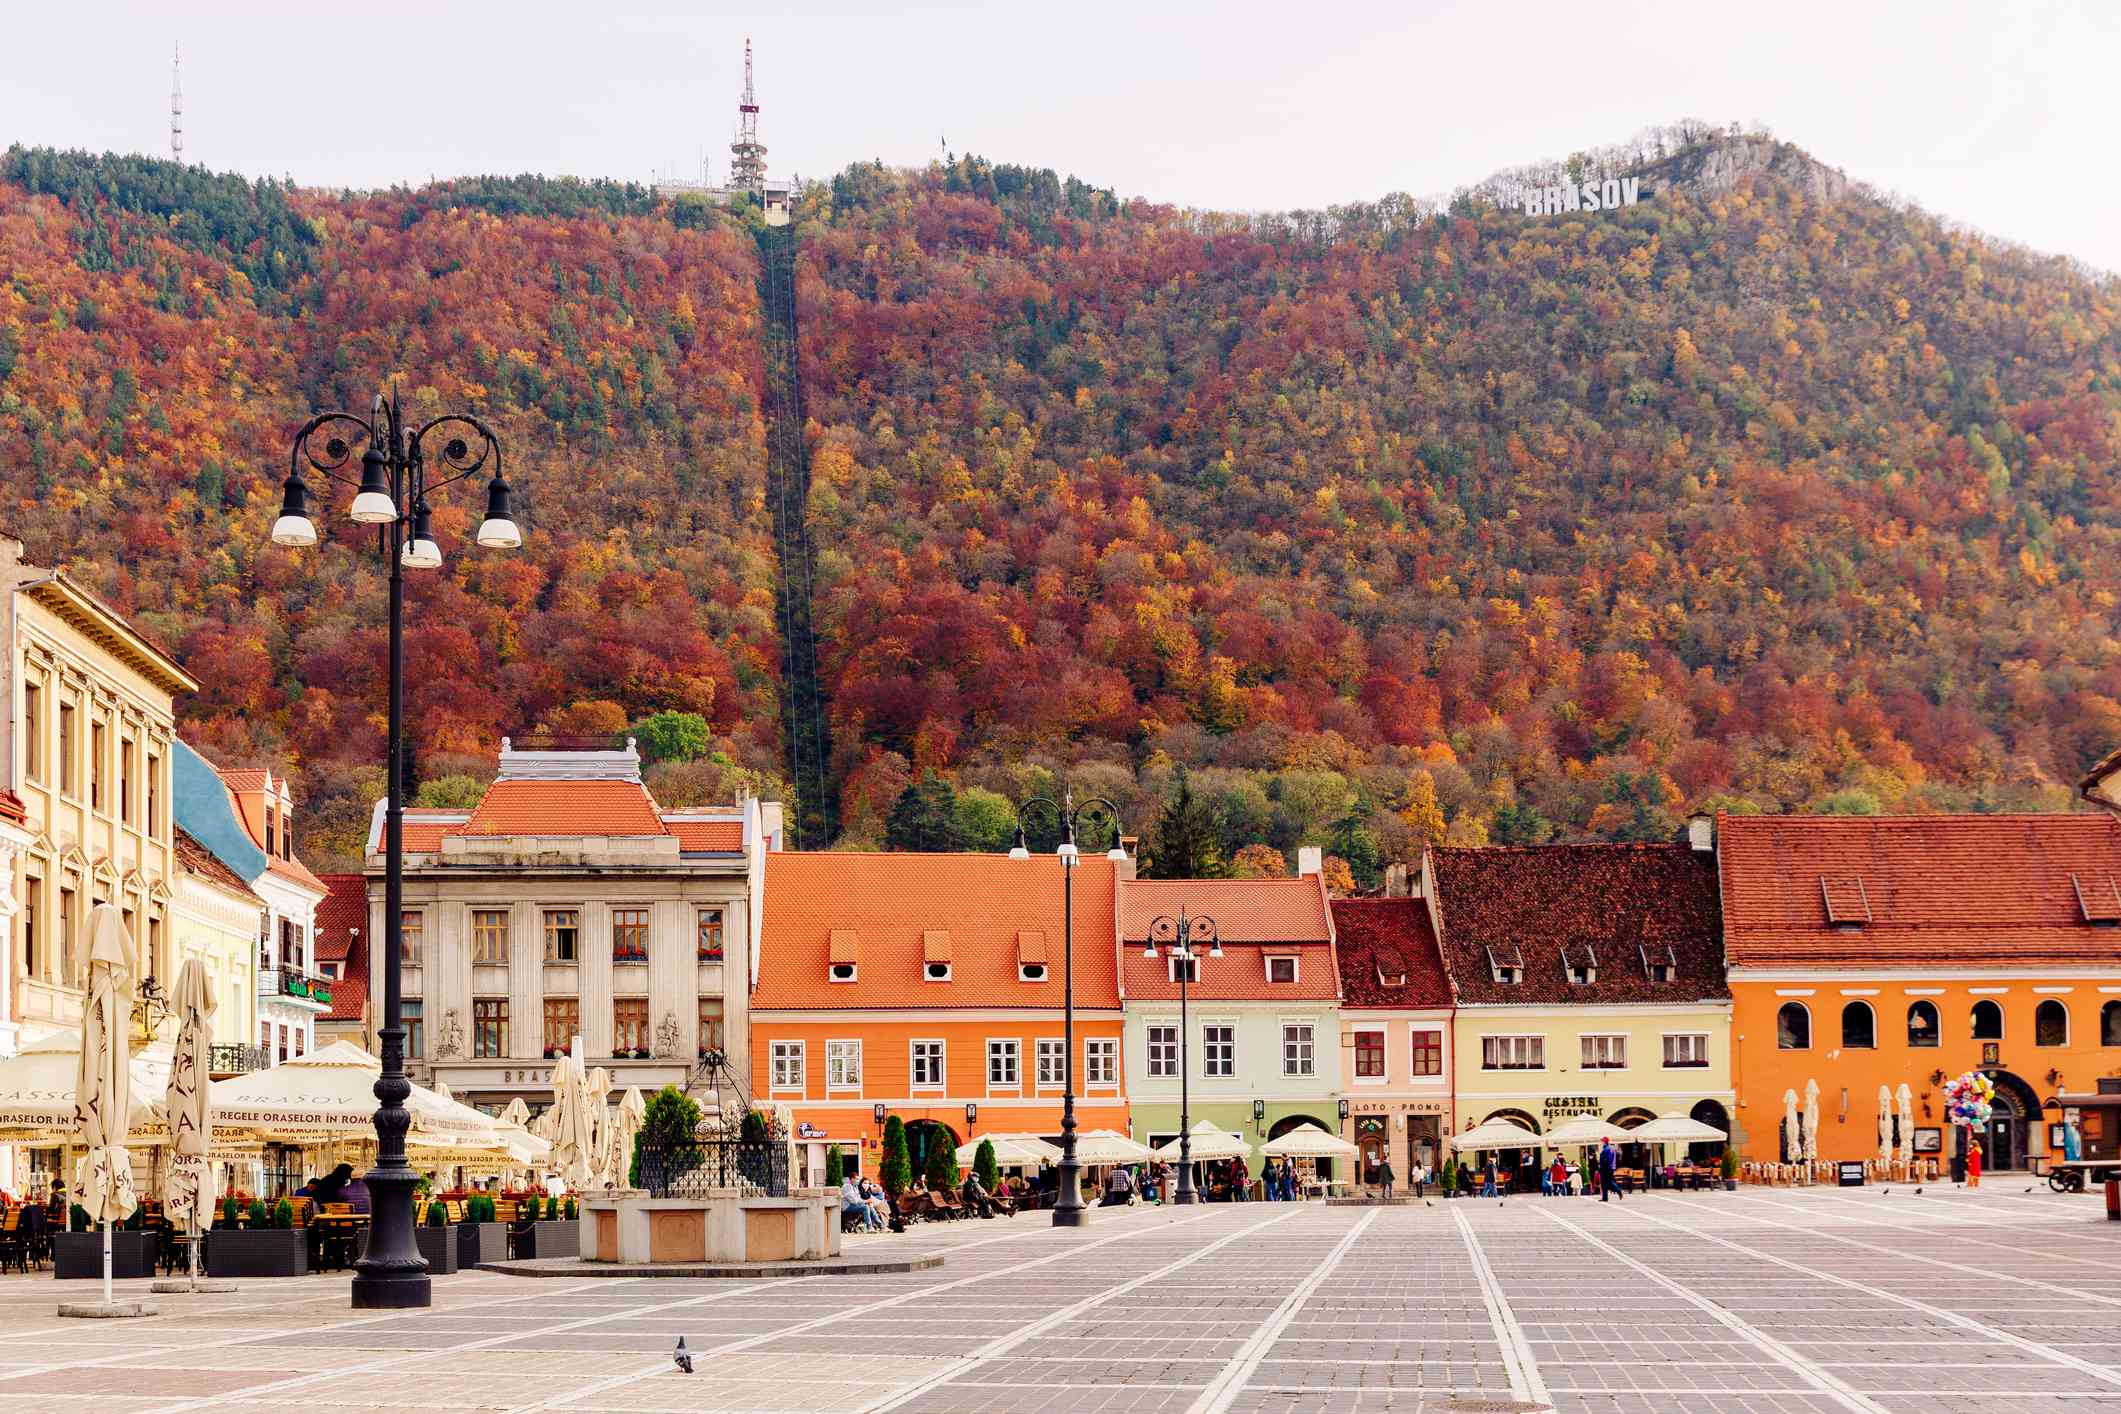 two-story, brightly colored orange, yellow, and pink buildings in Piata Sfatului square with a hill covered with trees in fall color in the background in Brasov, Romania